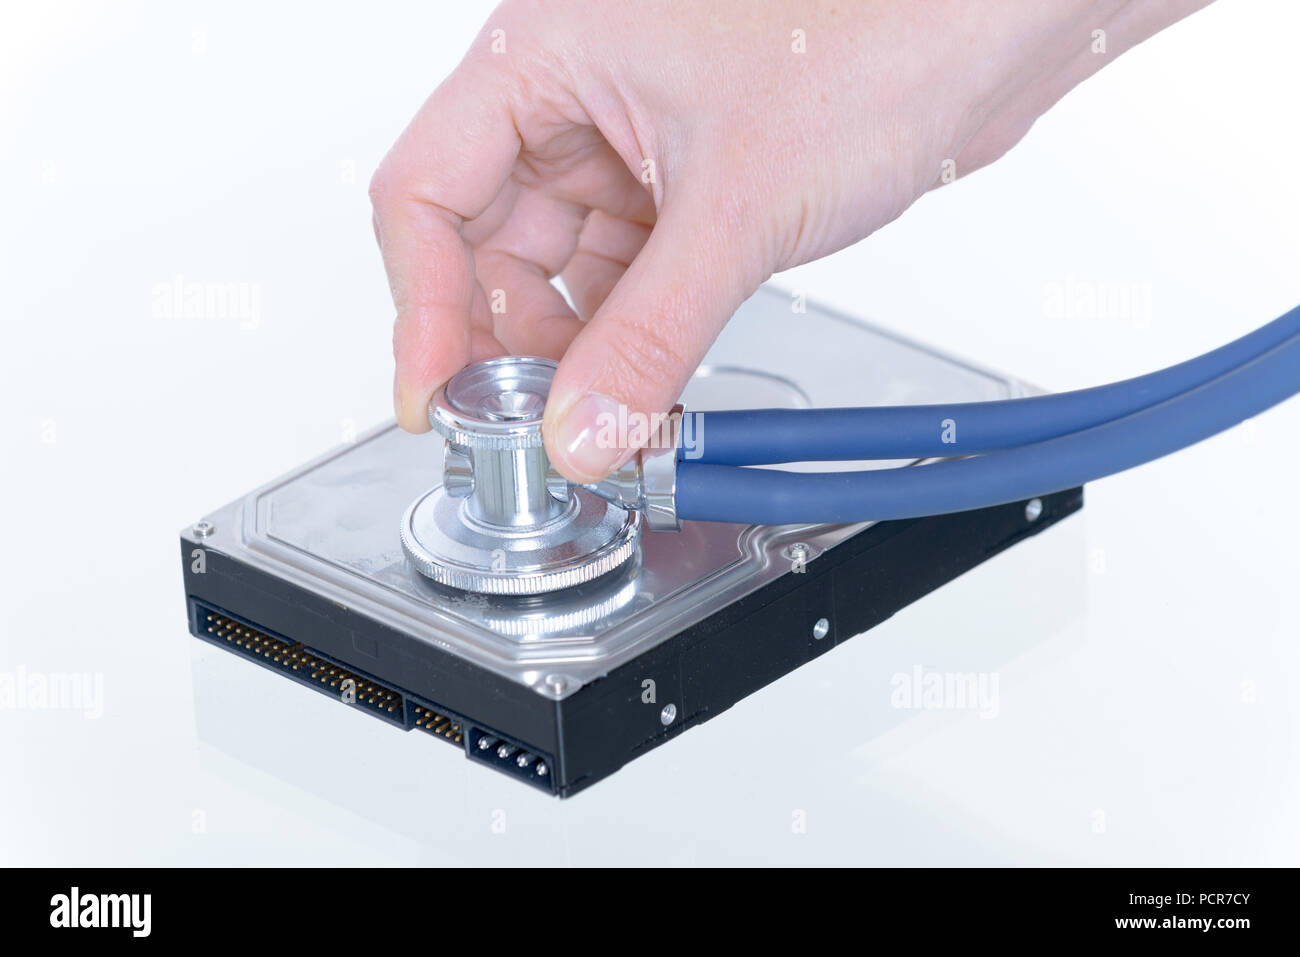 Disk failure, concept of testing with stethoscope - Stock Image